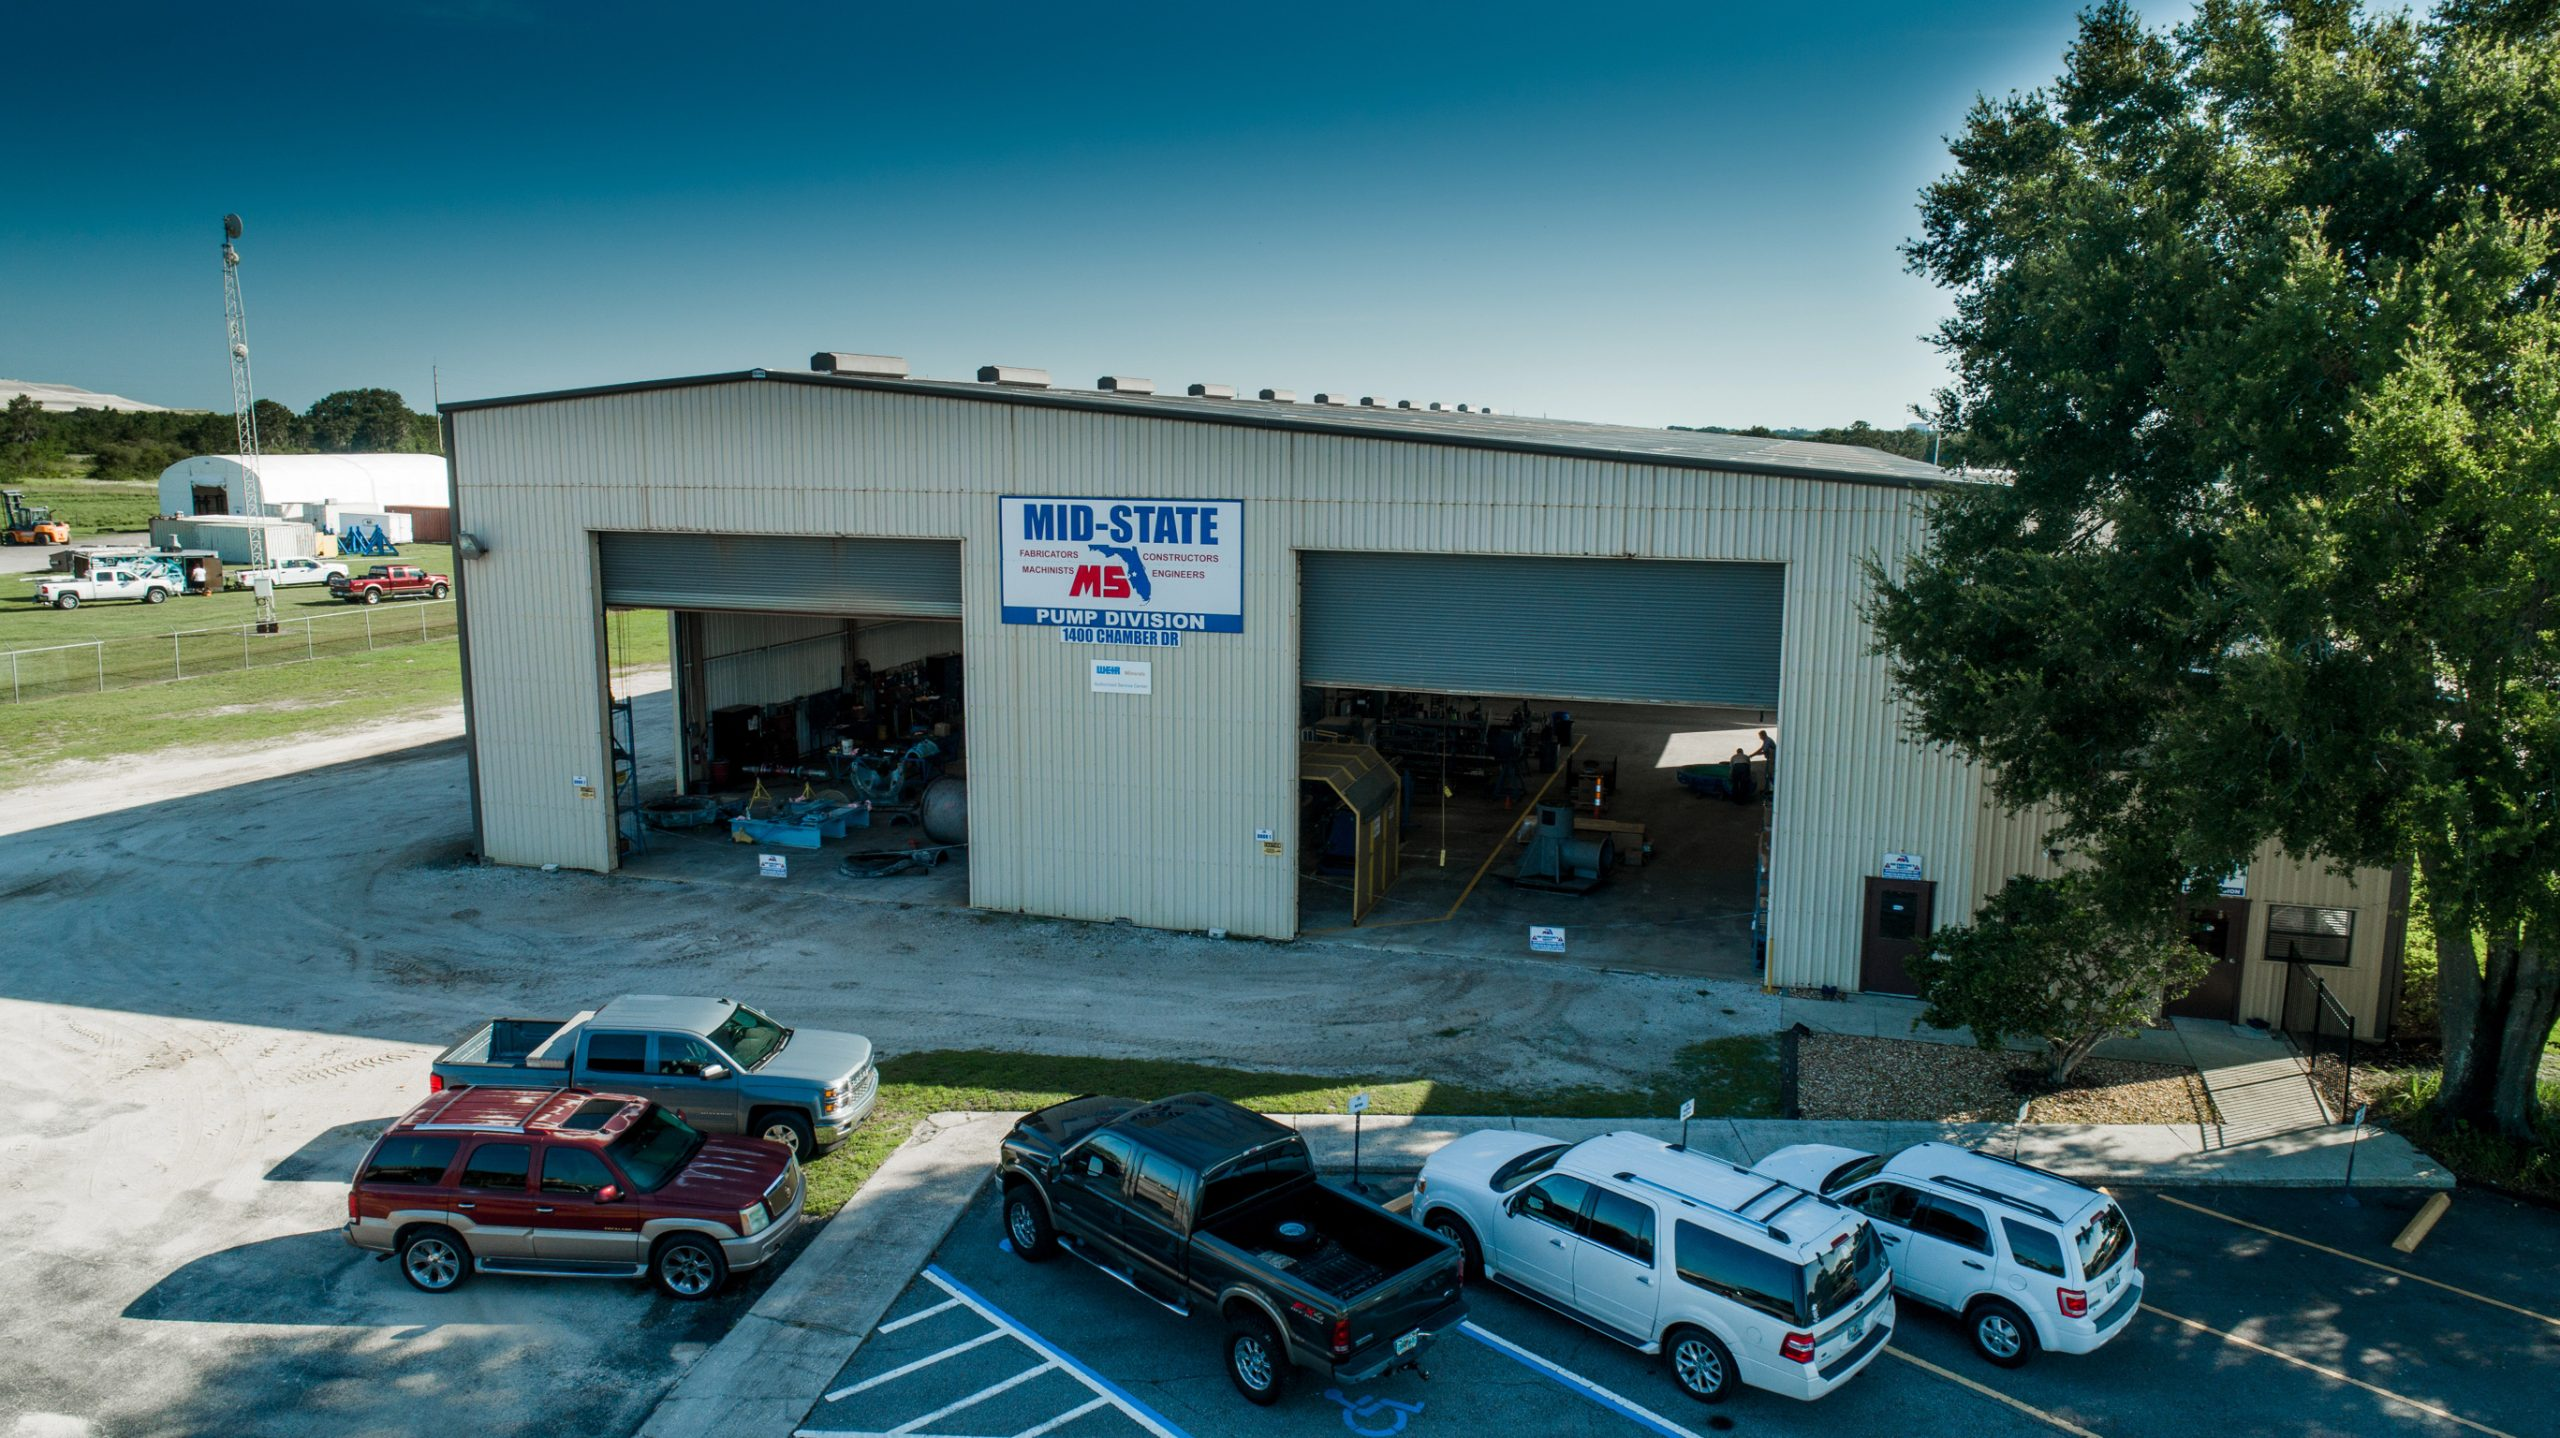 mid-state industrial pump division shop bartow florida